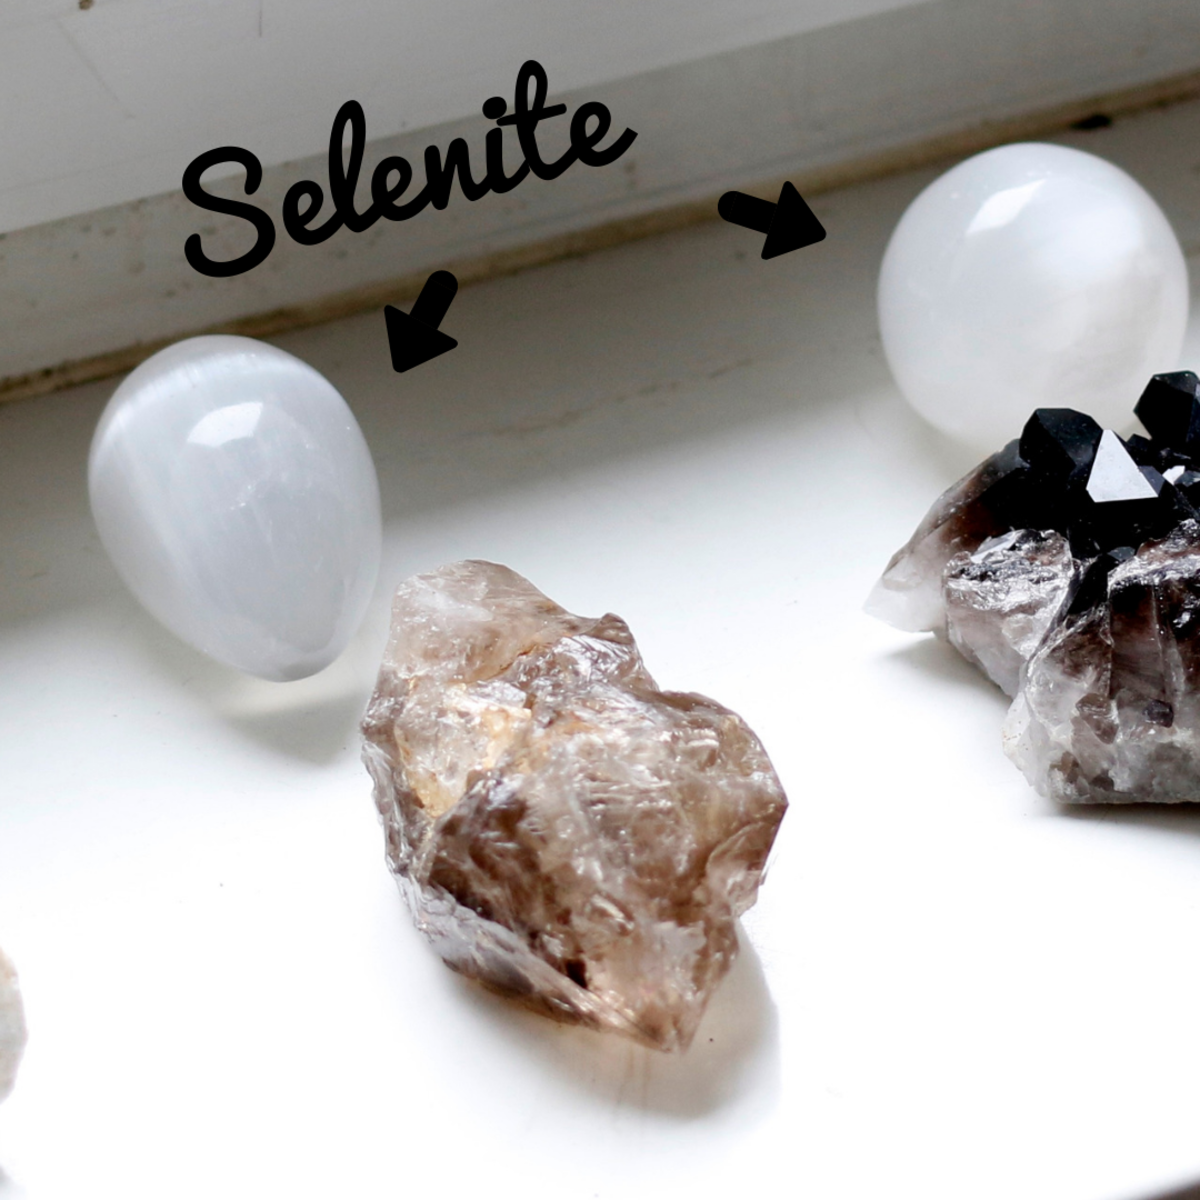 Selenite is used for attracting light energy.